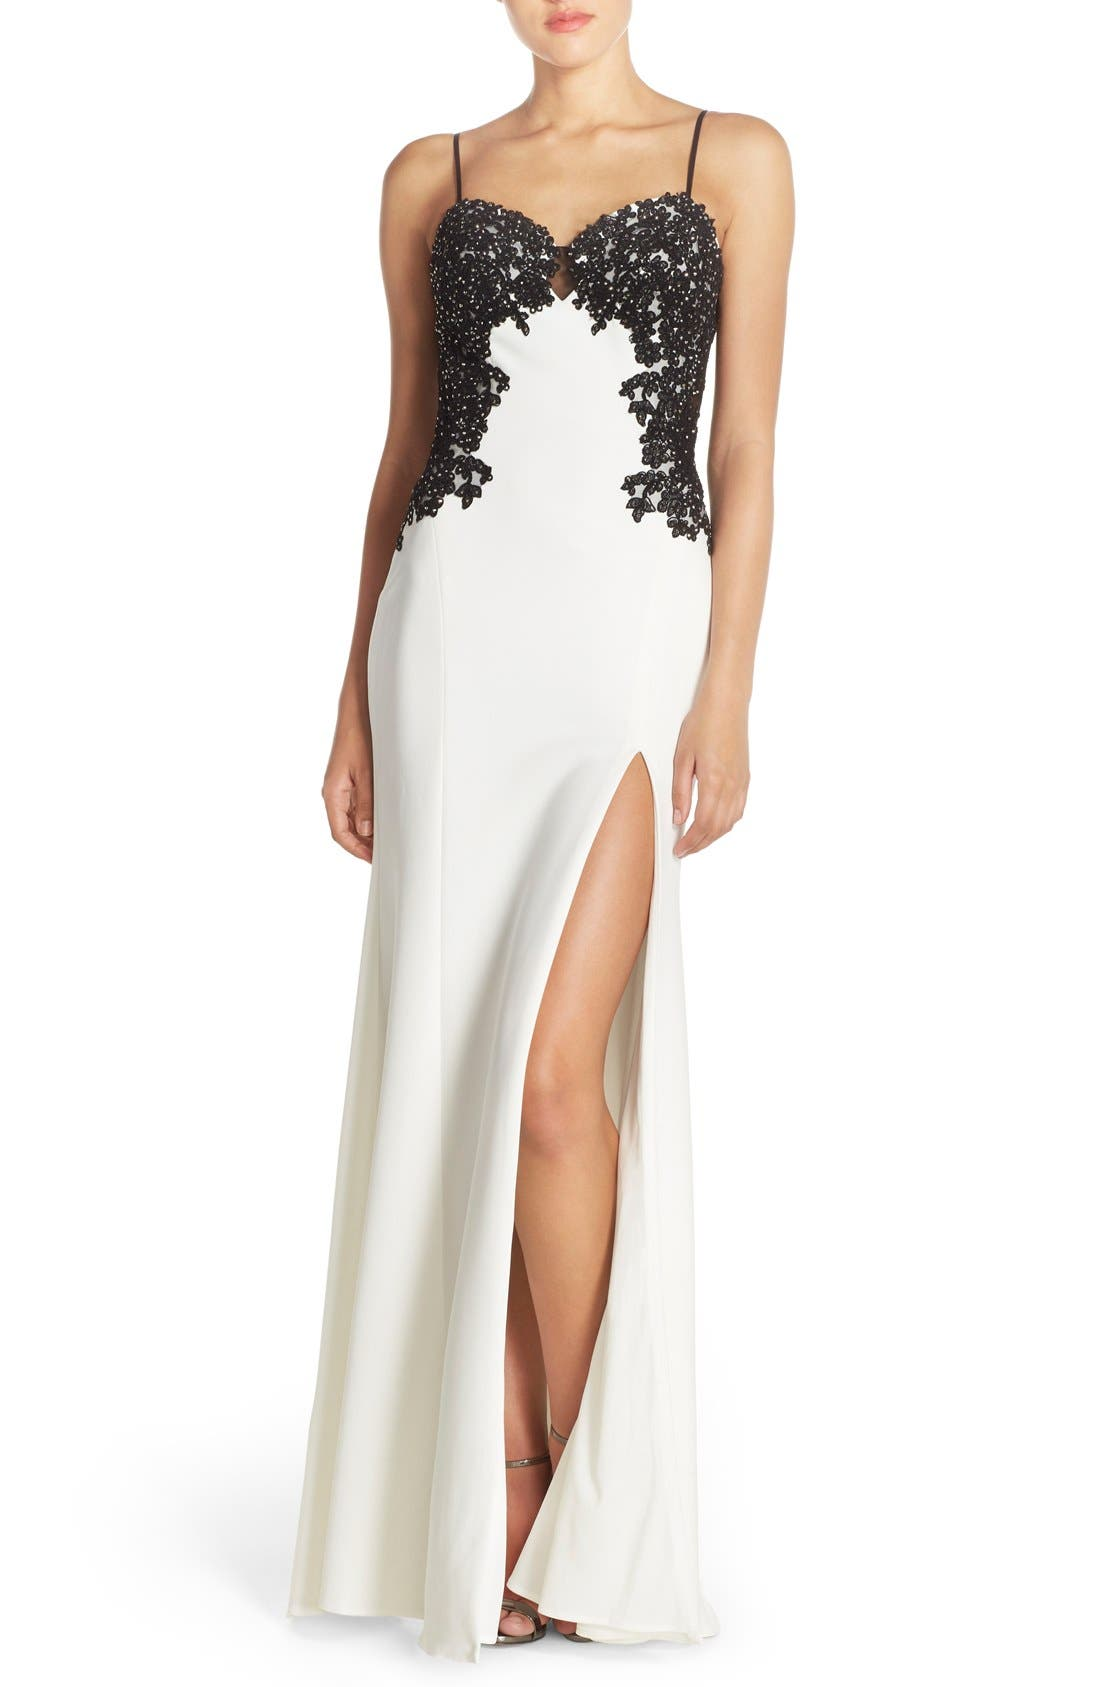 Main Image - Faviana Spaghetti Strap Gown with Beaded Floral Lace